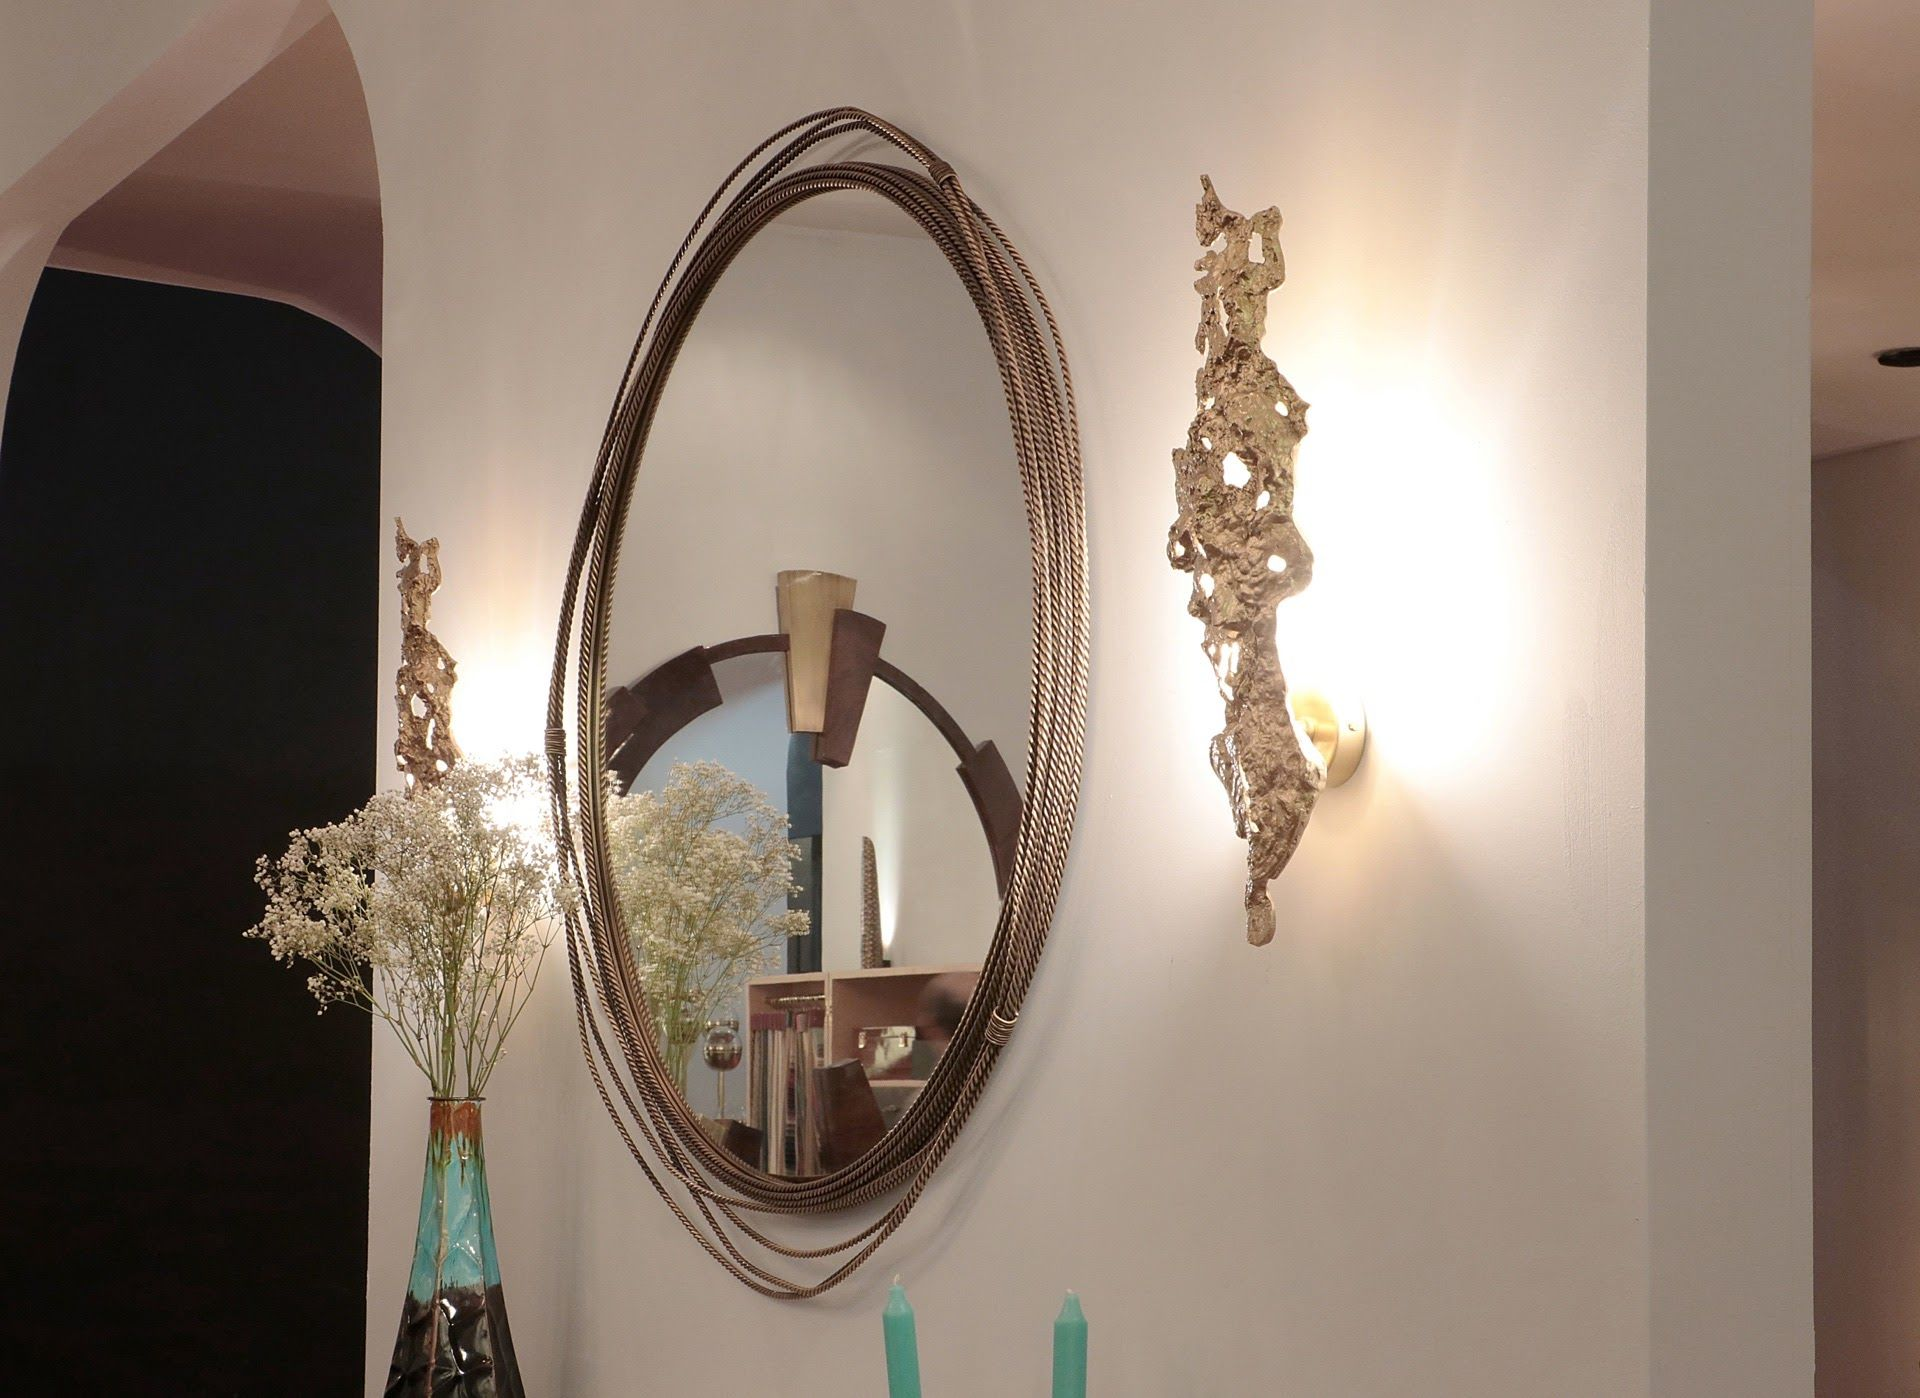 To see more news about the interior design shops in the world visit